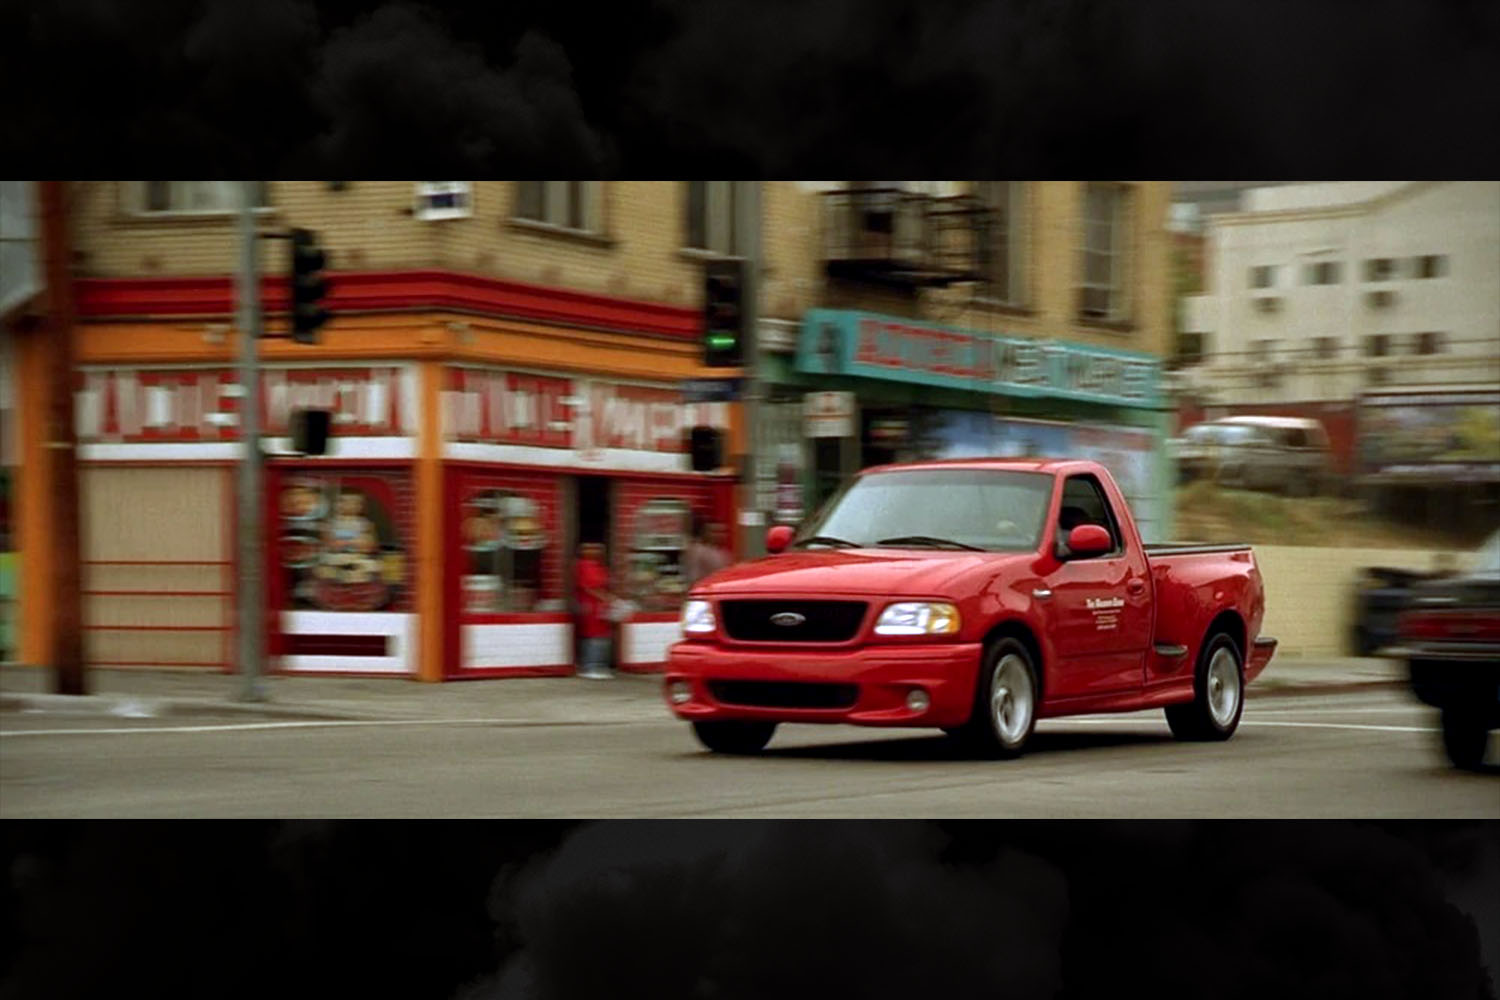 A red Ford F-150 SVT Lightning pickup truck in a scene from the original Fast and Furious movie